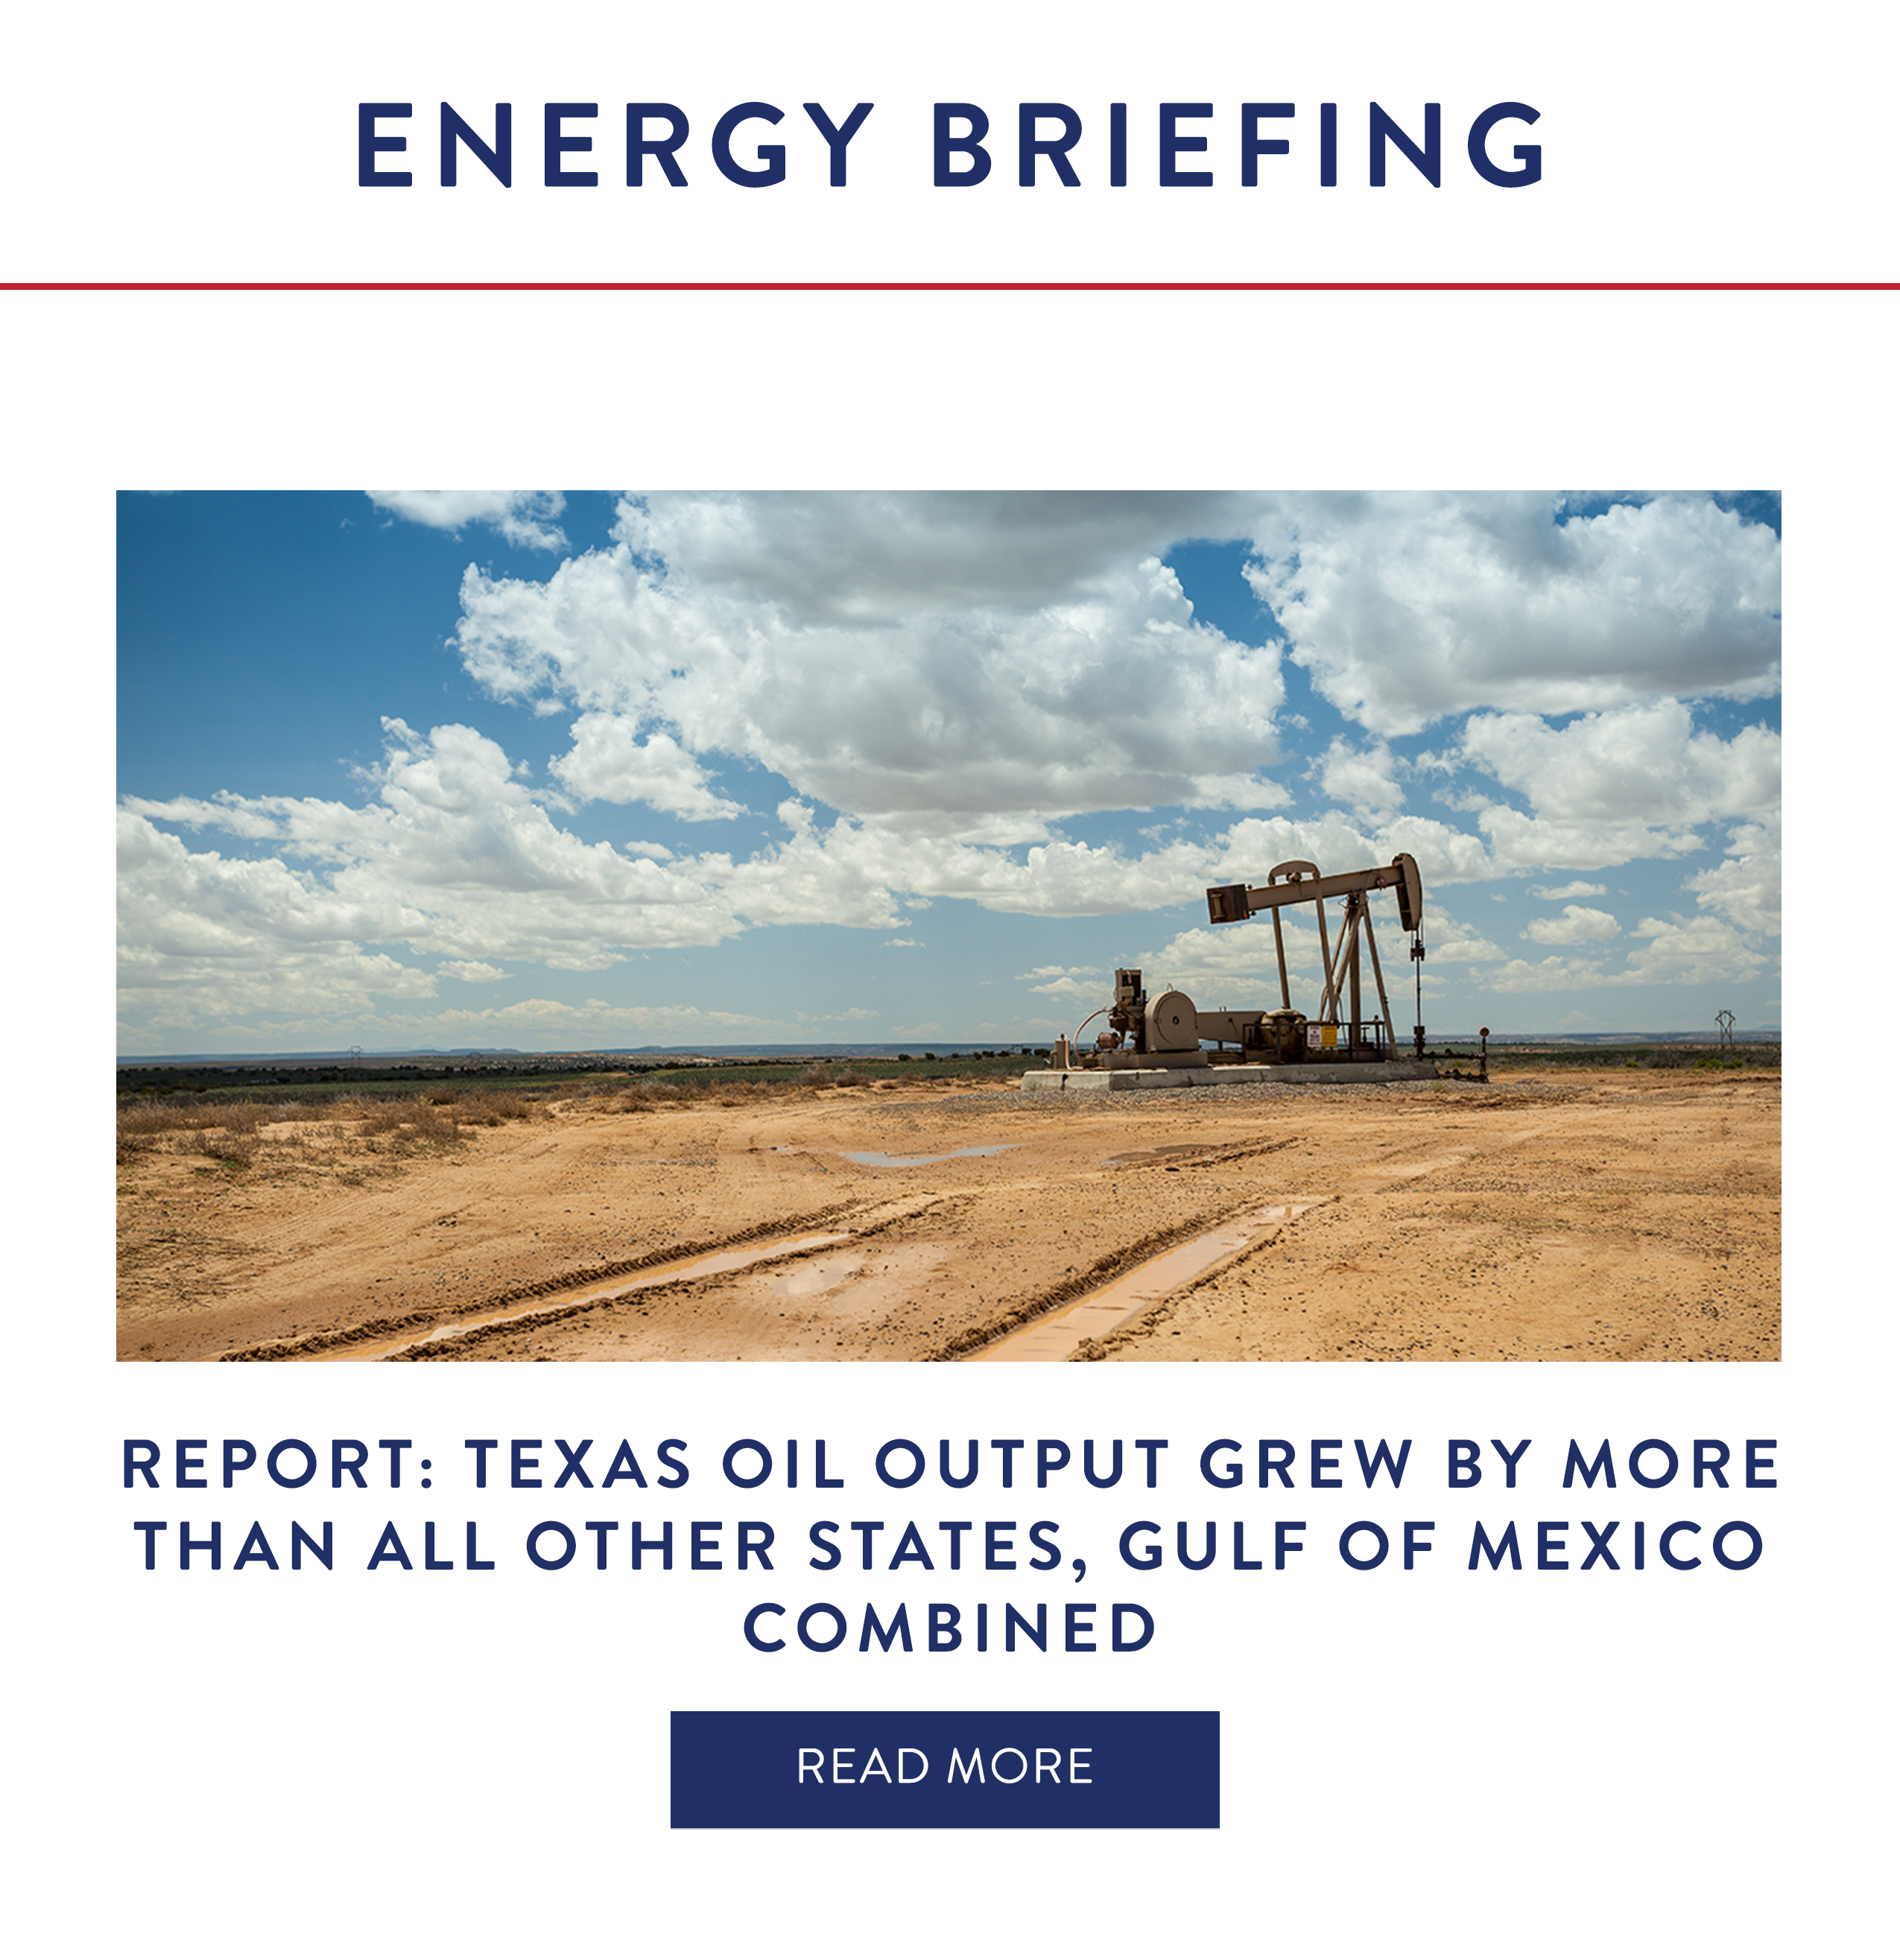 Report: Texas Oil Output Grew by More Than All Other States, Gulf of Mexico Combined